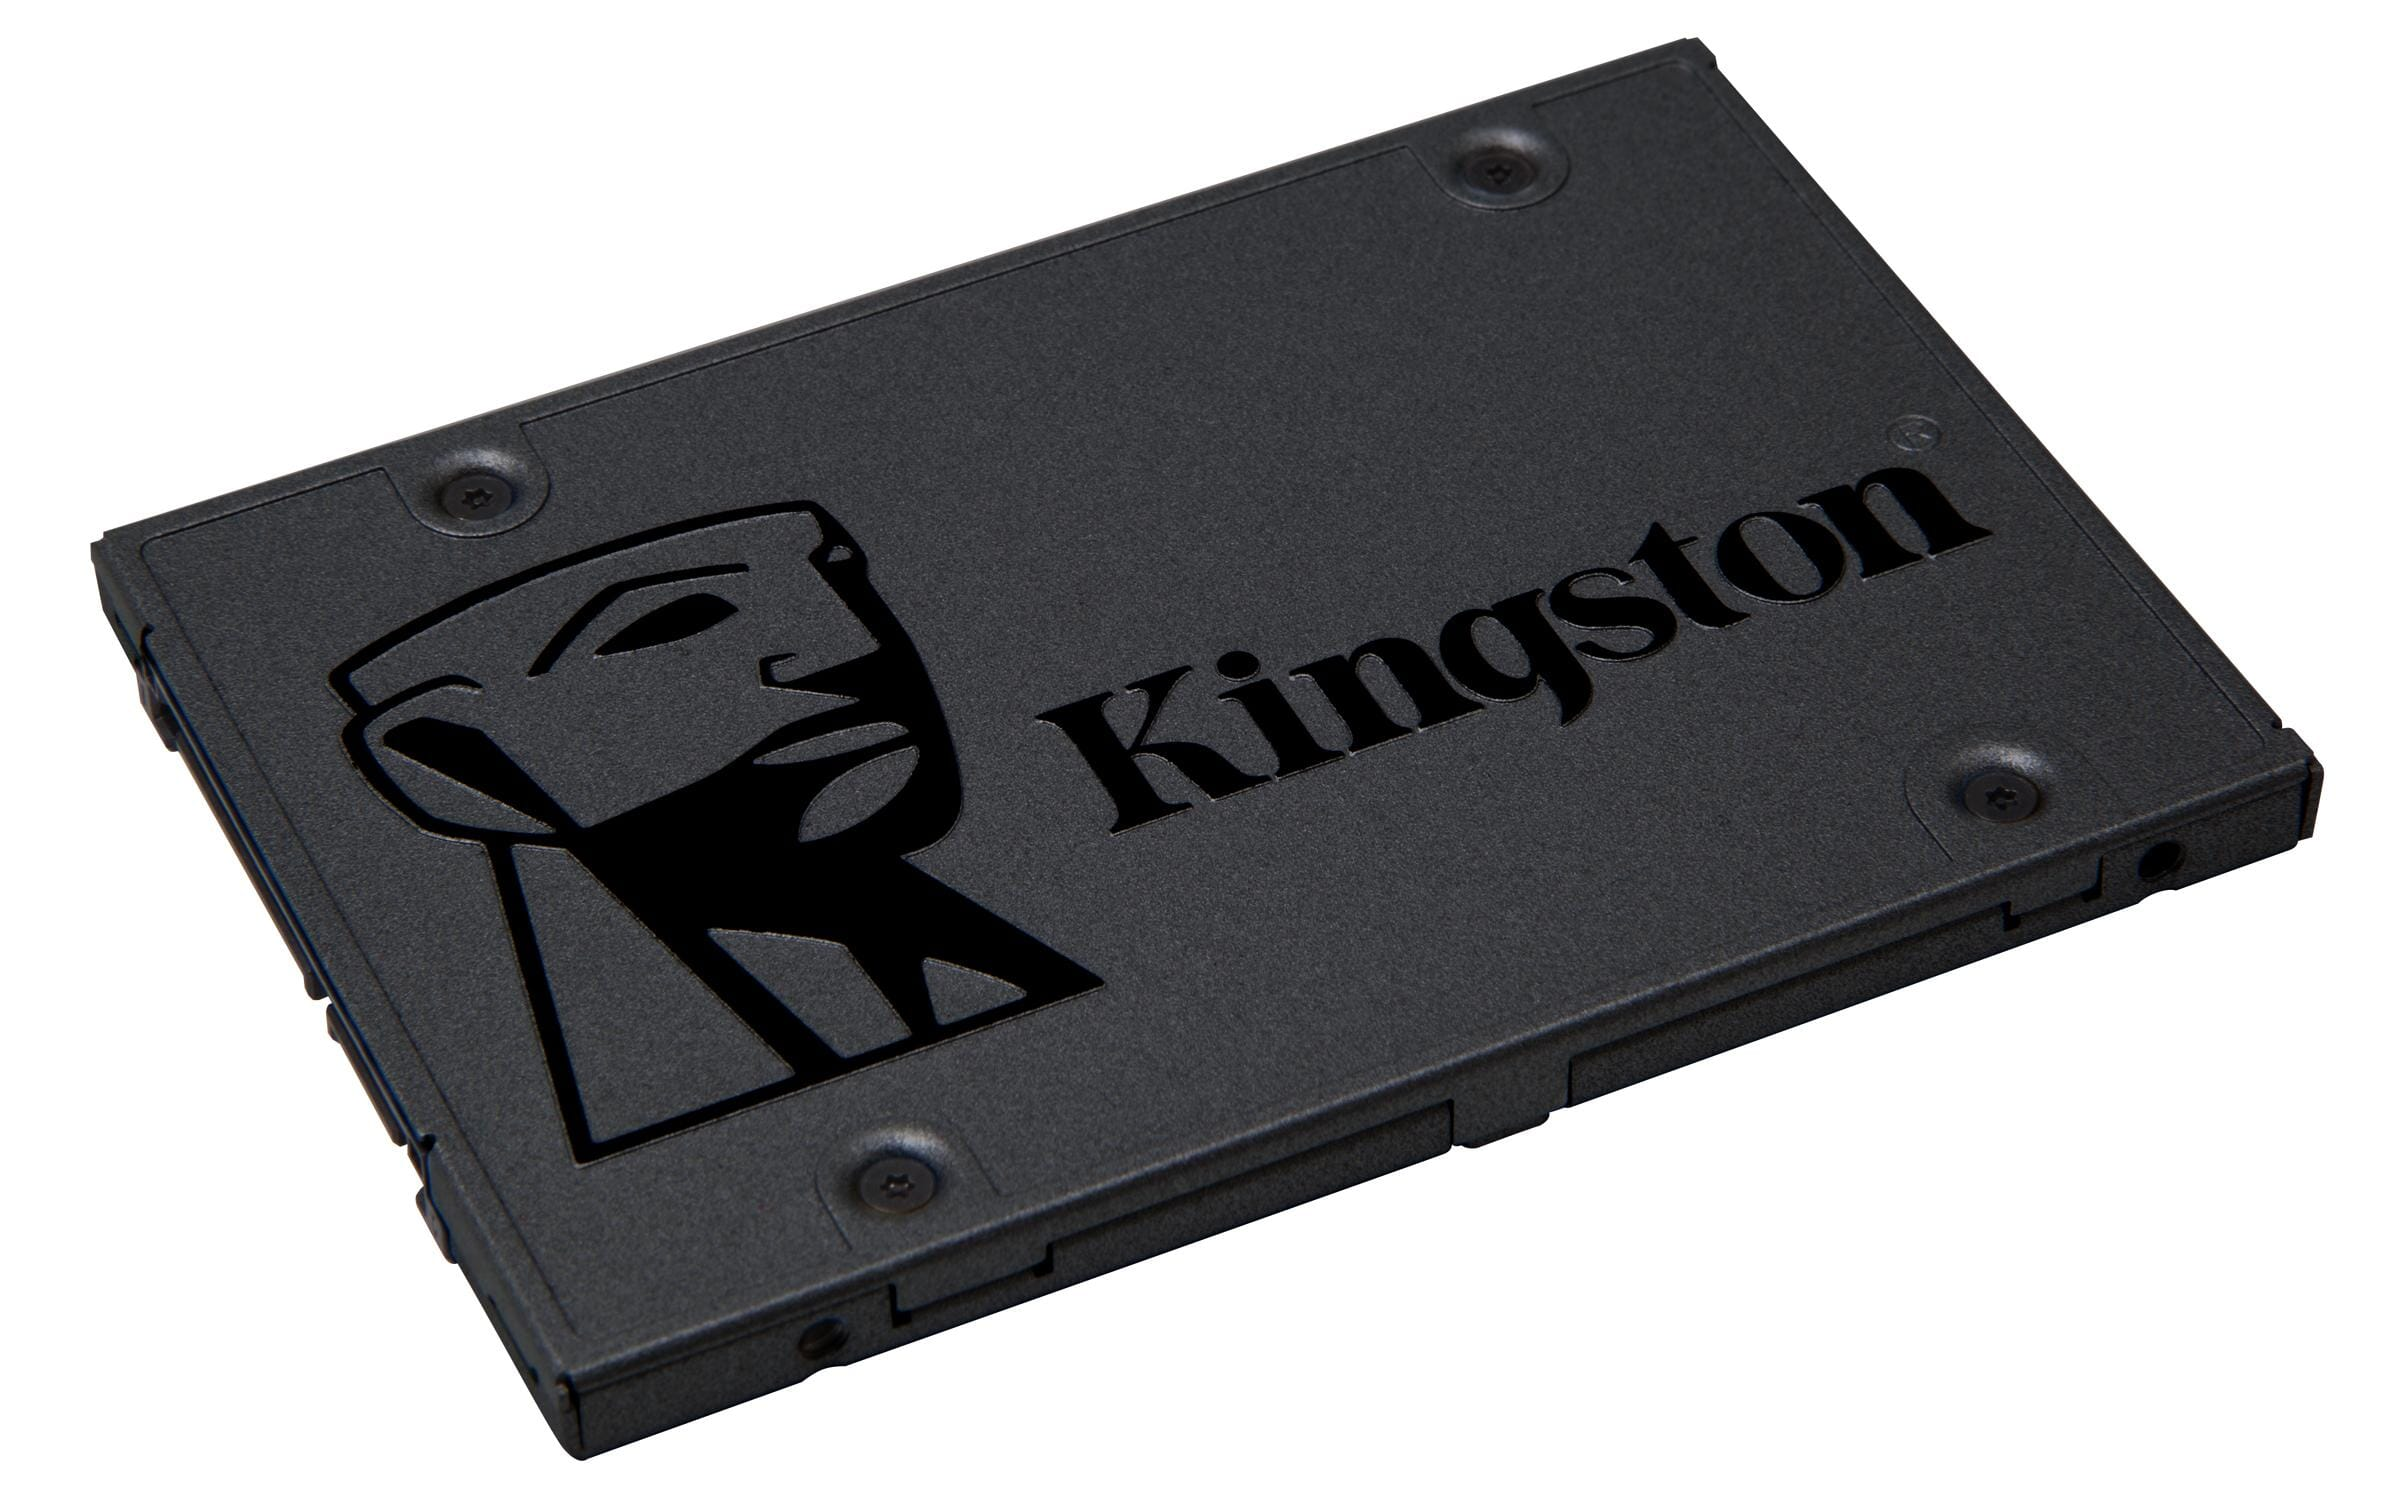 240GB 2.5 SSD Solid State Drive for Lenovo ThinkPad Edge E550,E550c,E555,E560,E560p,E565,E570,E570c,E575,E580,L330,S430